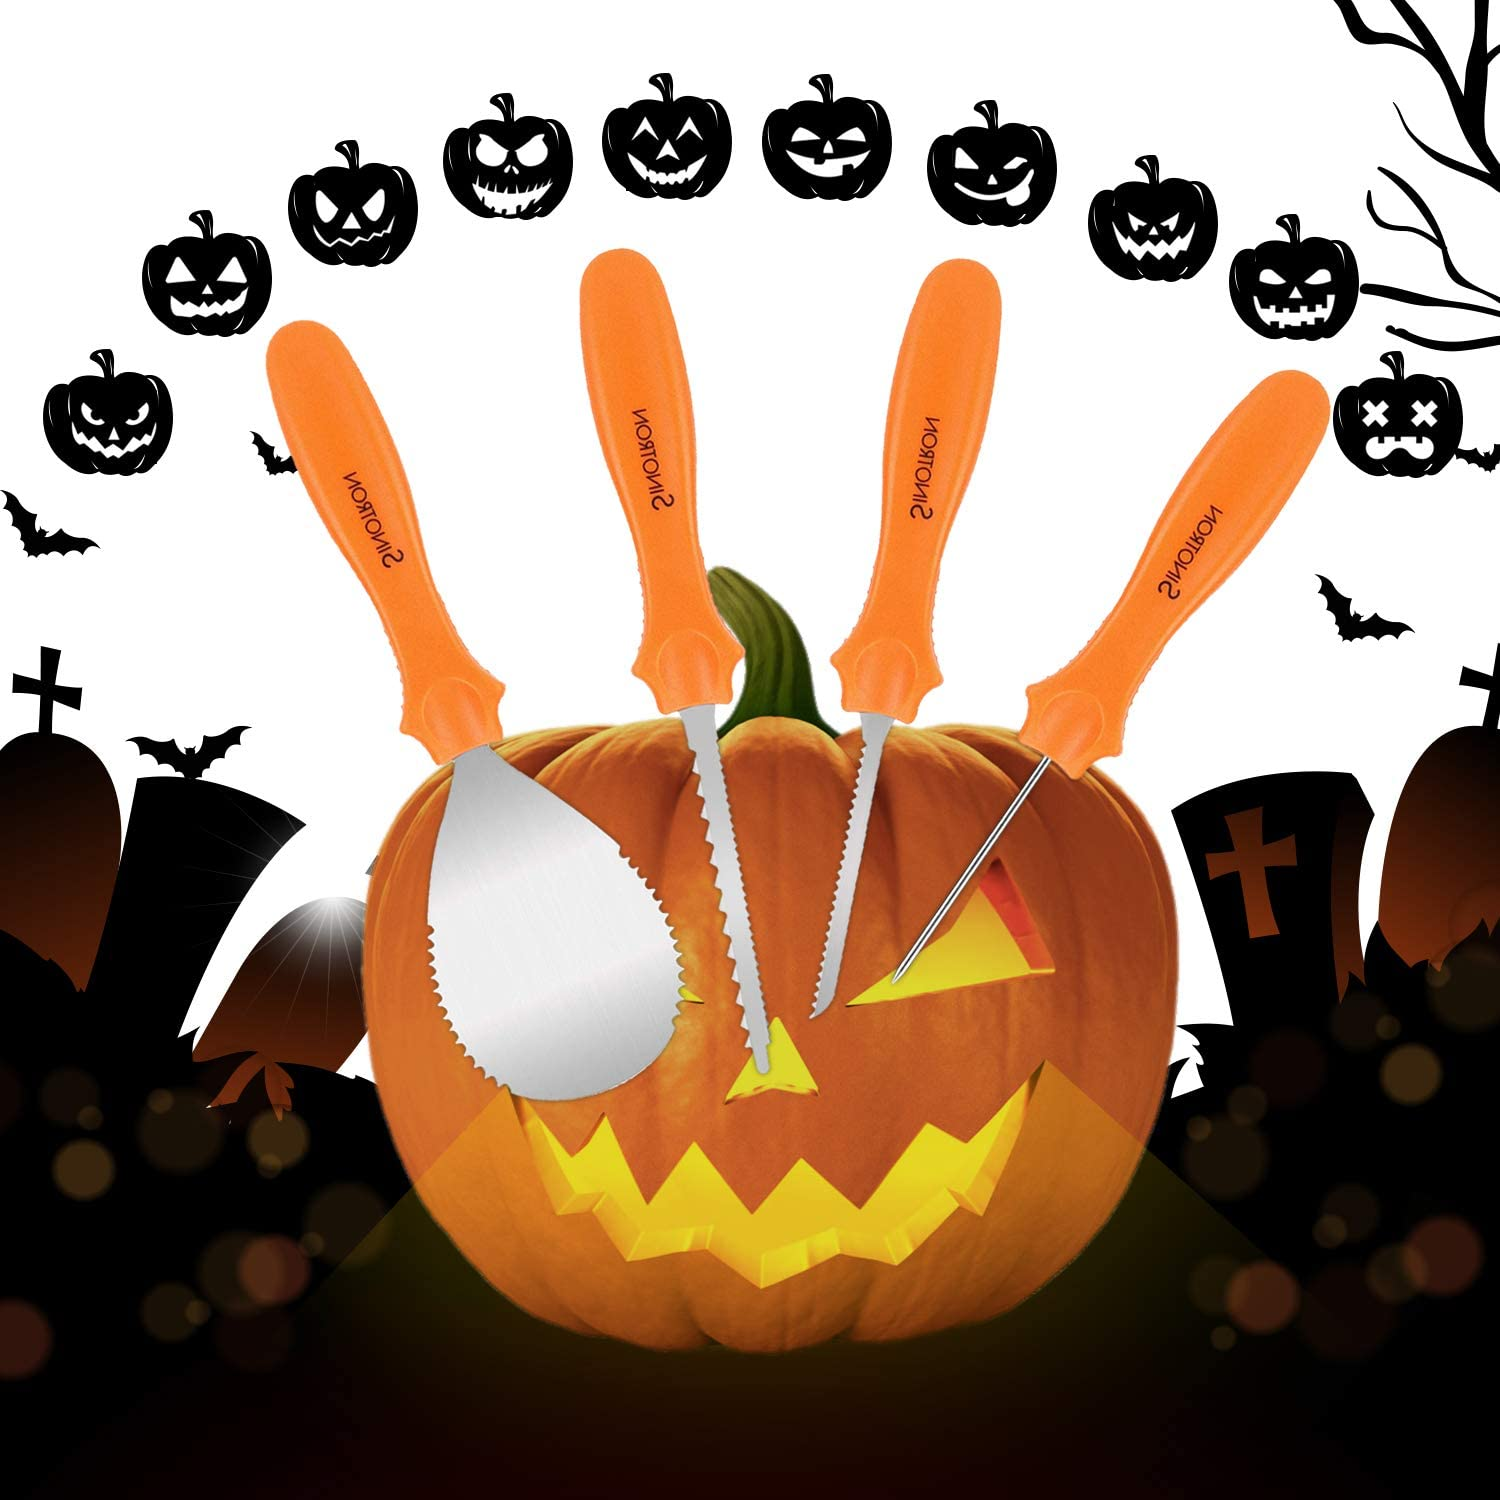 Pumpkin Carving Kit 35% OFF for Kids PCS Tools -14 Safety and trust w